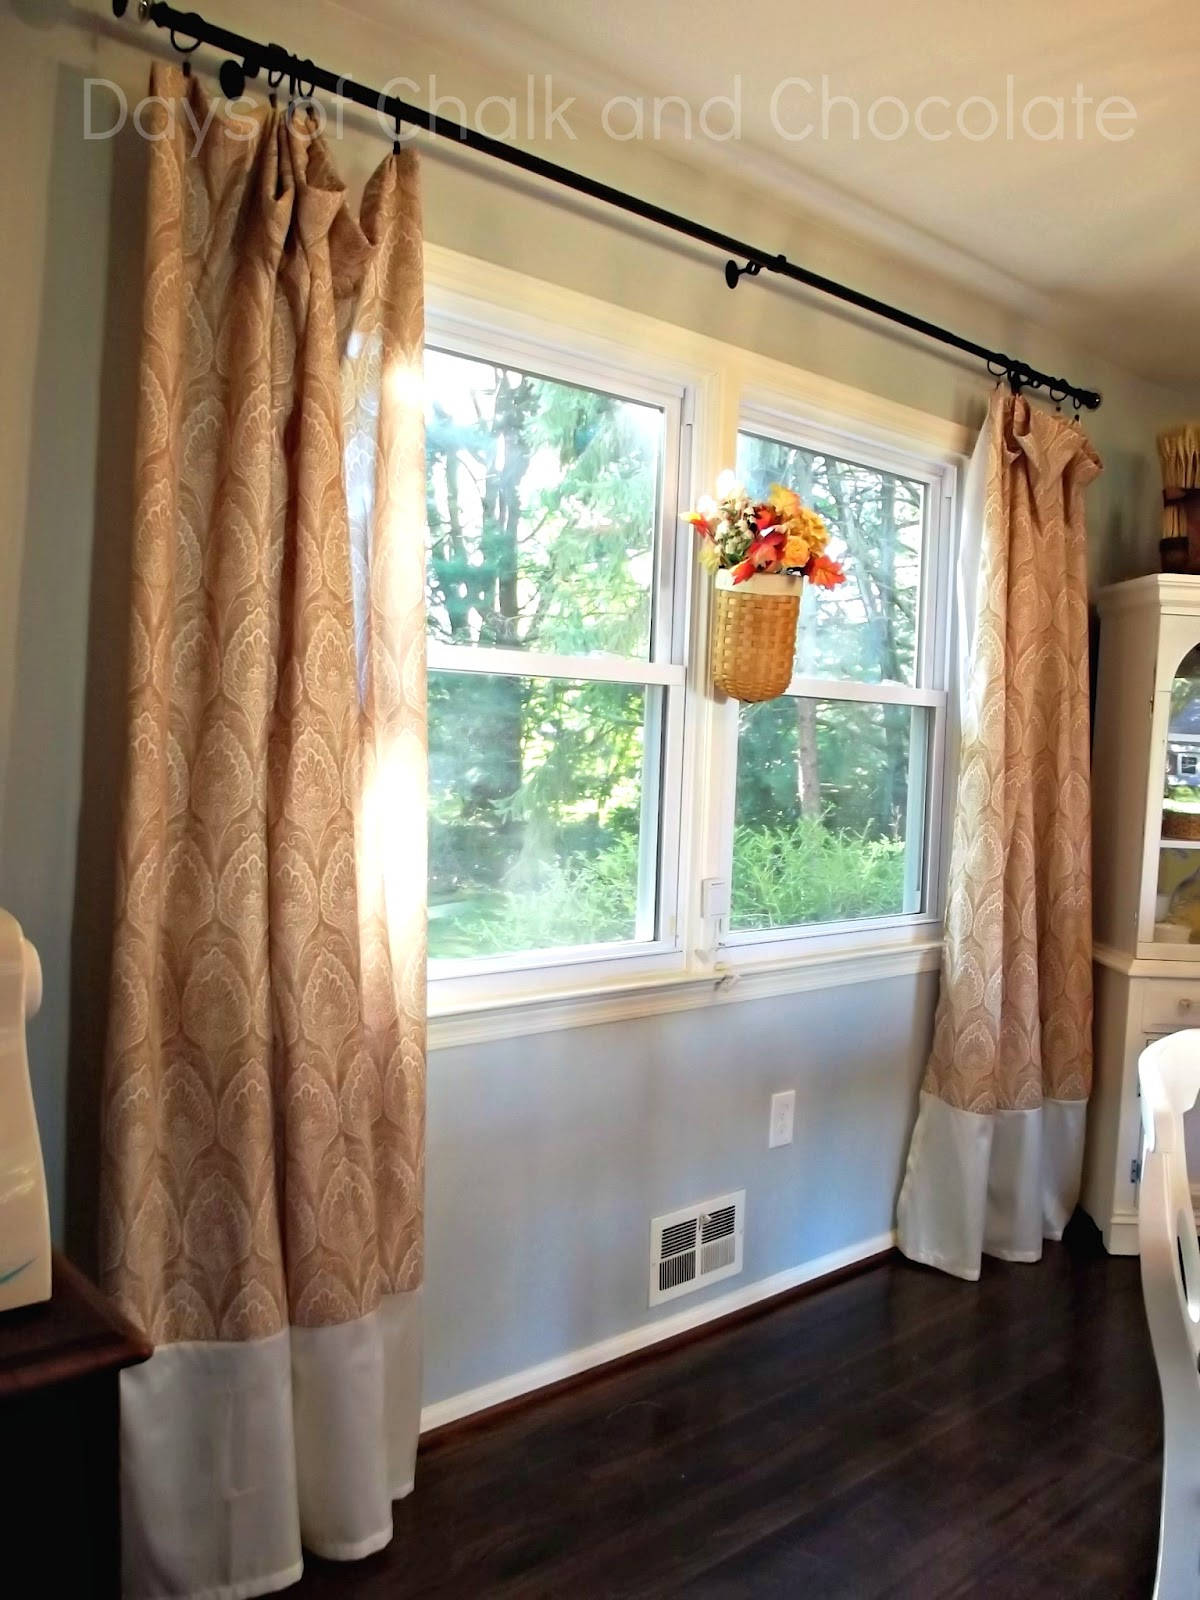 Pottery barn silk curtains - Pottery Barn Silk Curtains